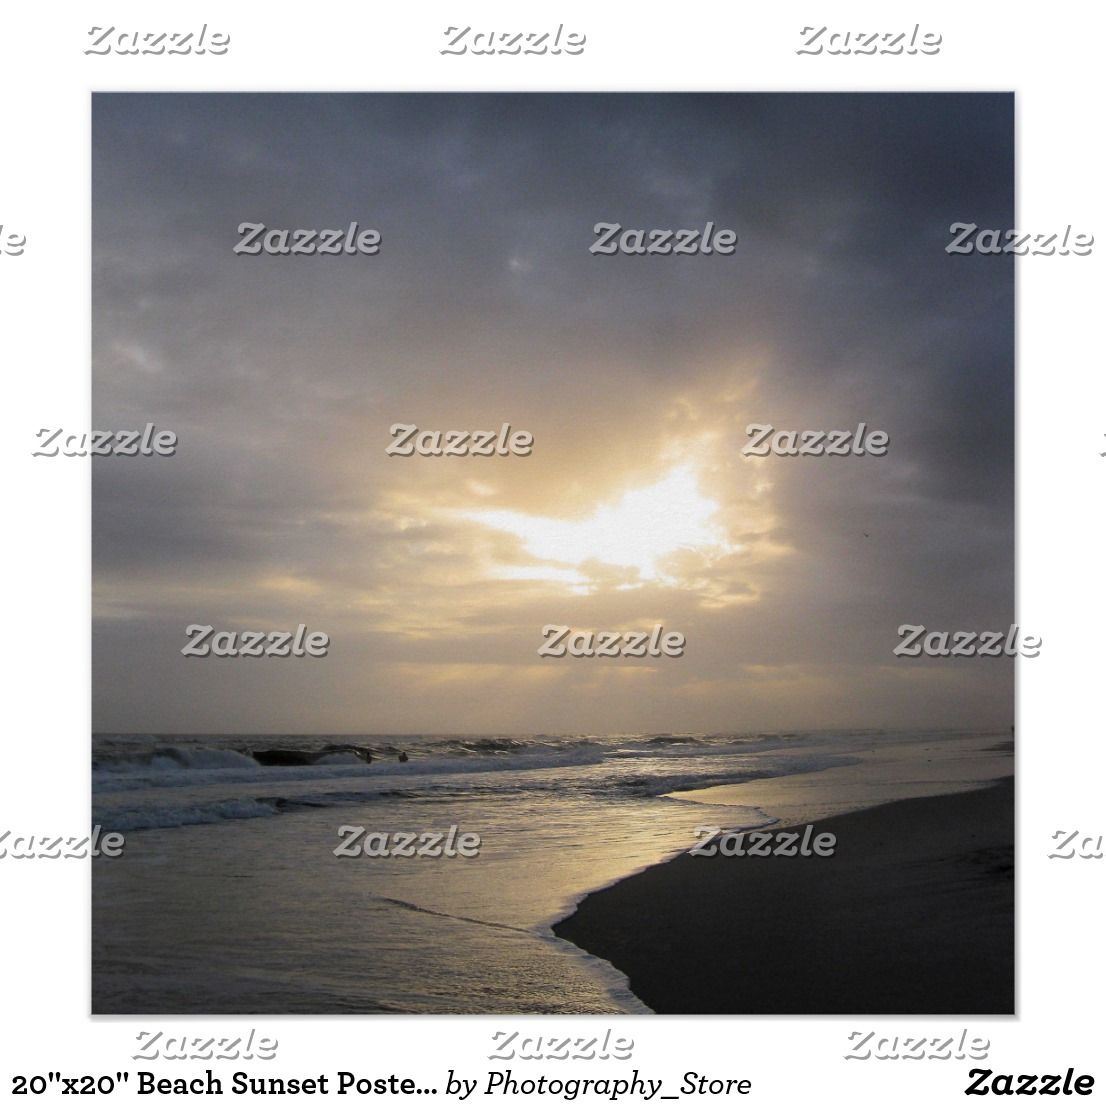 """20""""X20"""" Beach Sunset Poster Print   Zazzle   Poster Inside Sunset Glasgow Times Printable Format"""